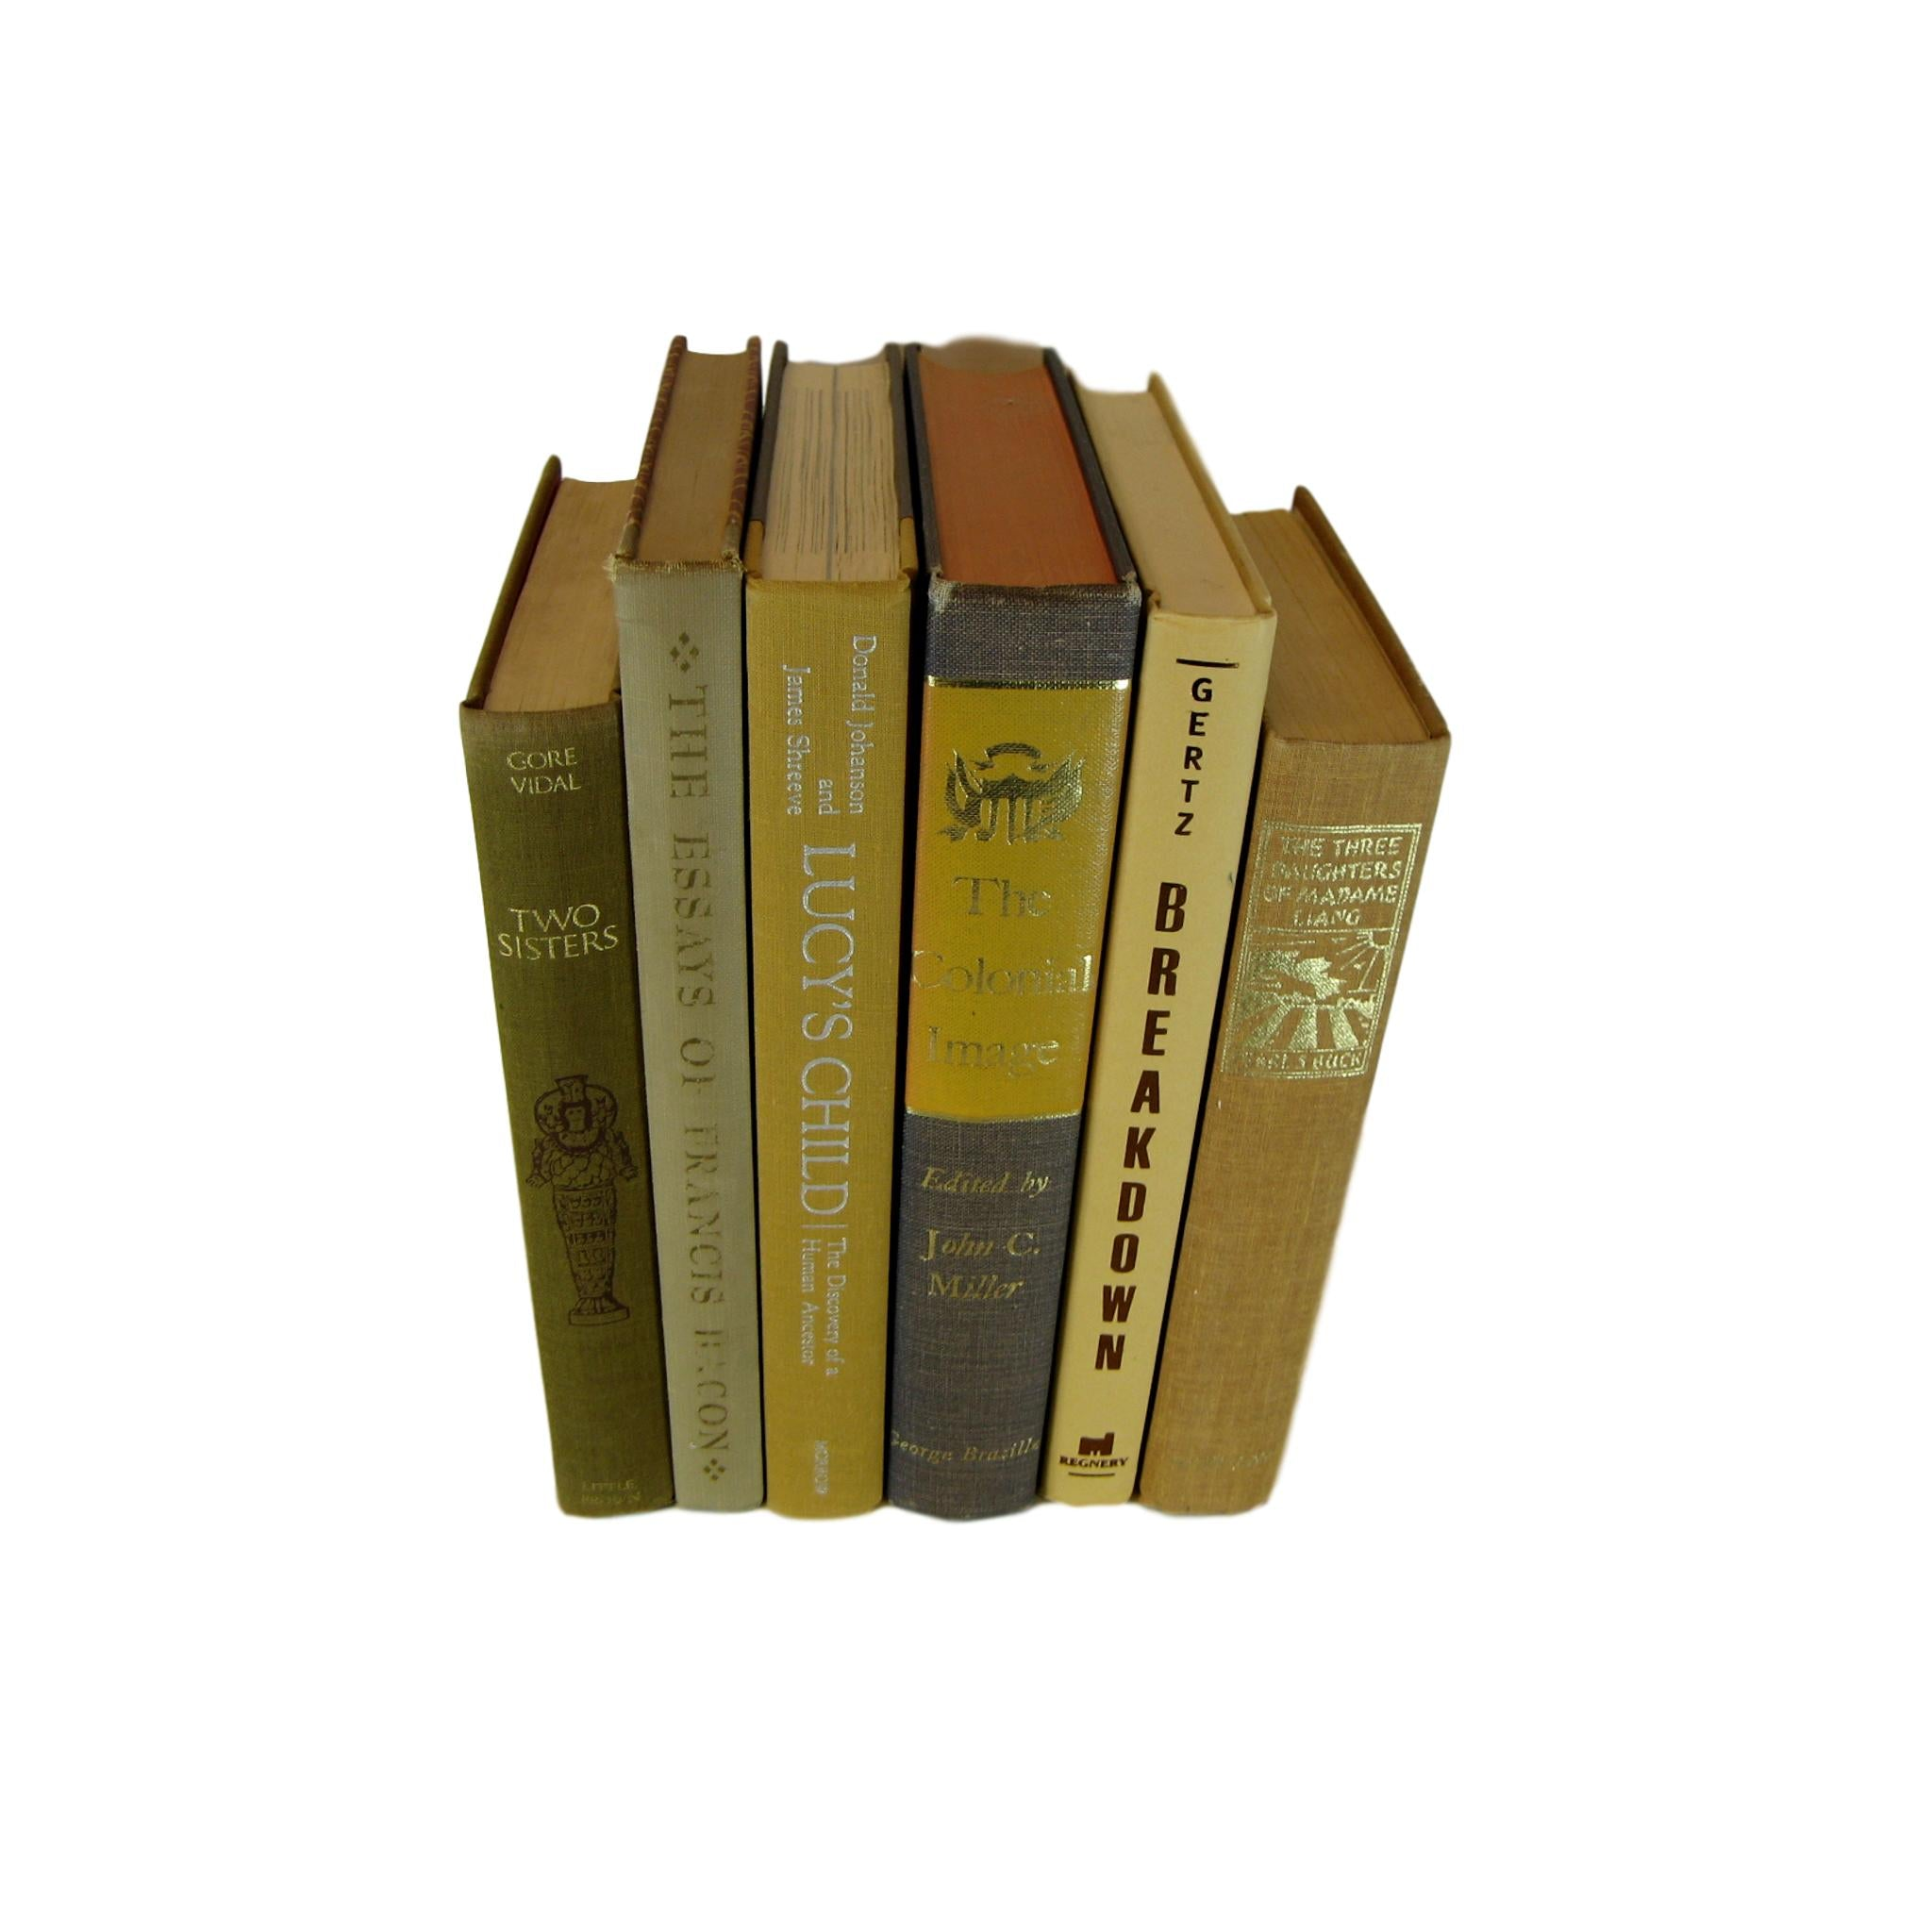 Brown Old Books for Bookshelf Decor, S/6 - Decades of Vintage